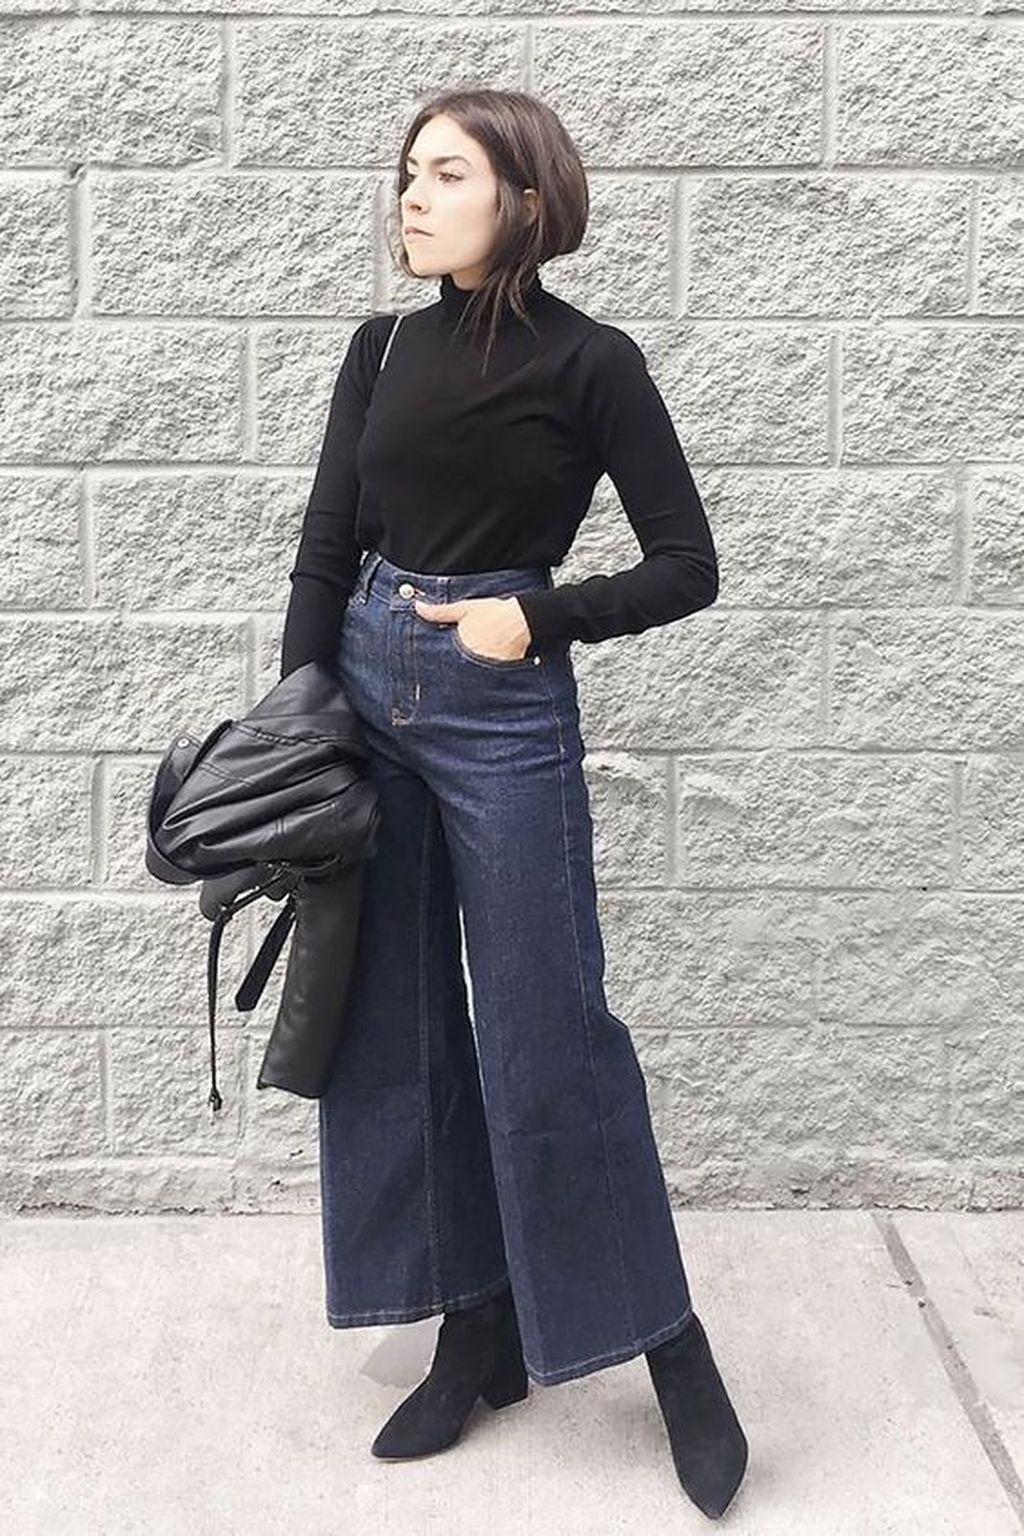 47 Best Jean Louis Deniot Images On Pinterest: 47 The Best Ways To Wear Wide Leg Pants For Young Women Ideas